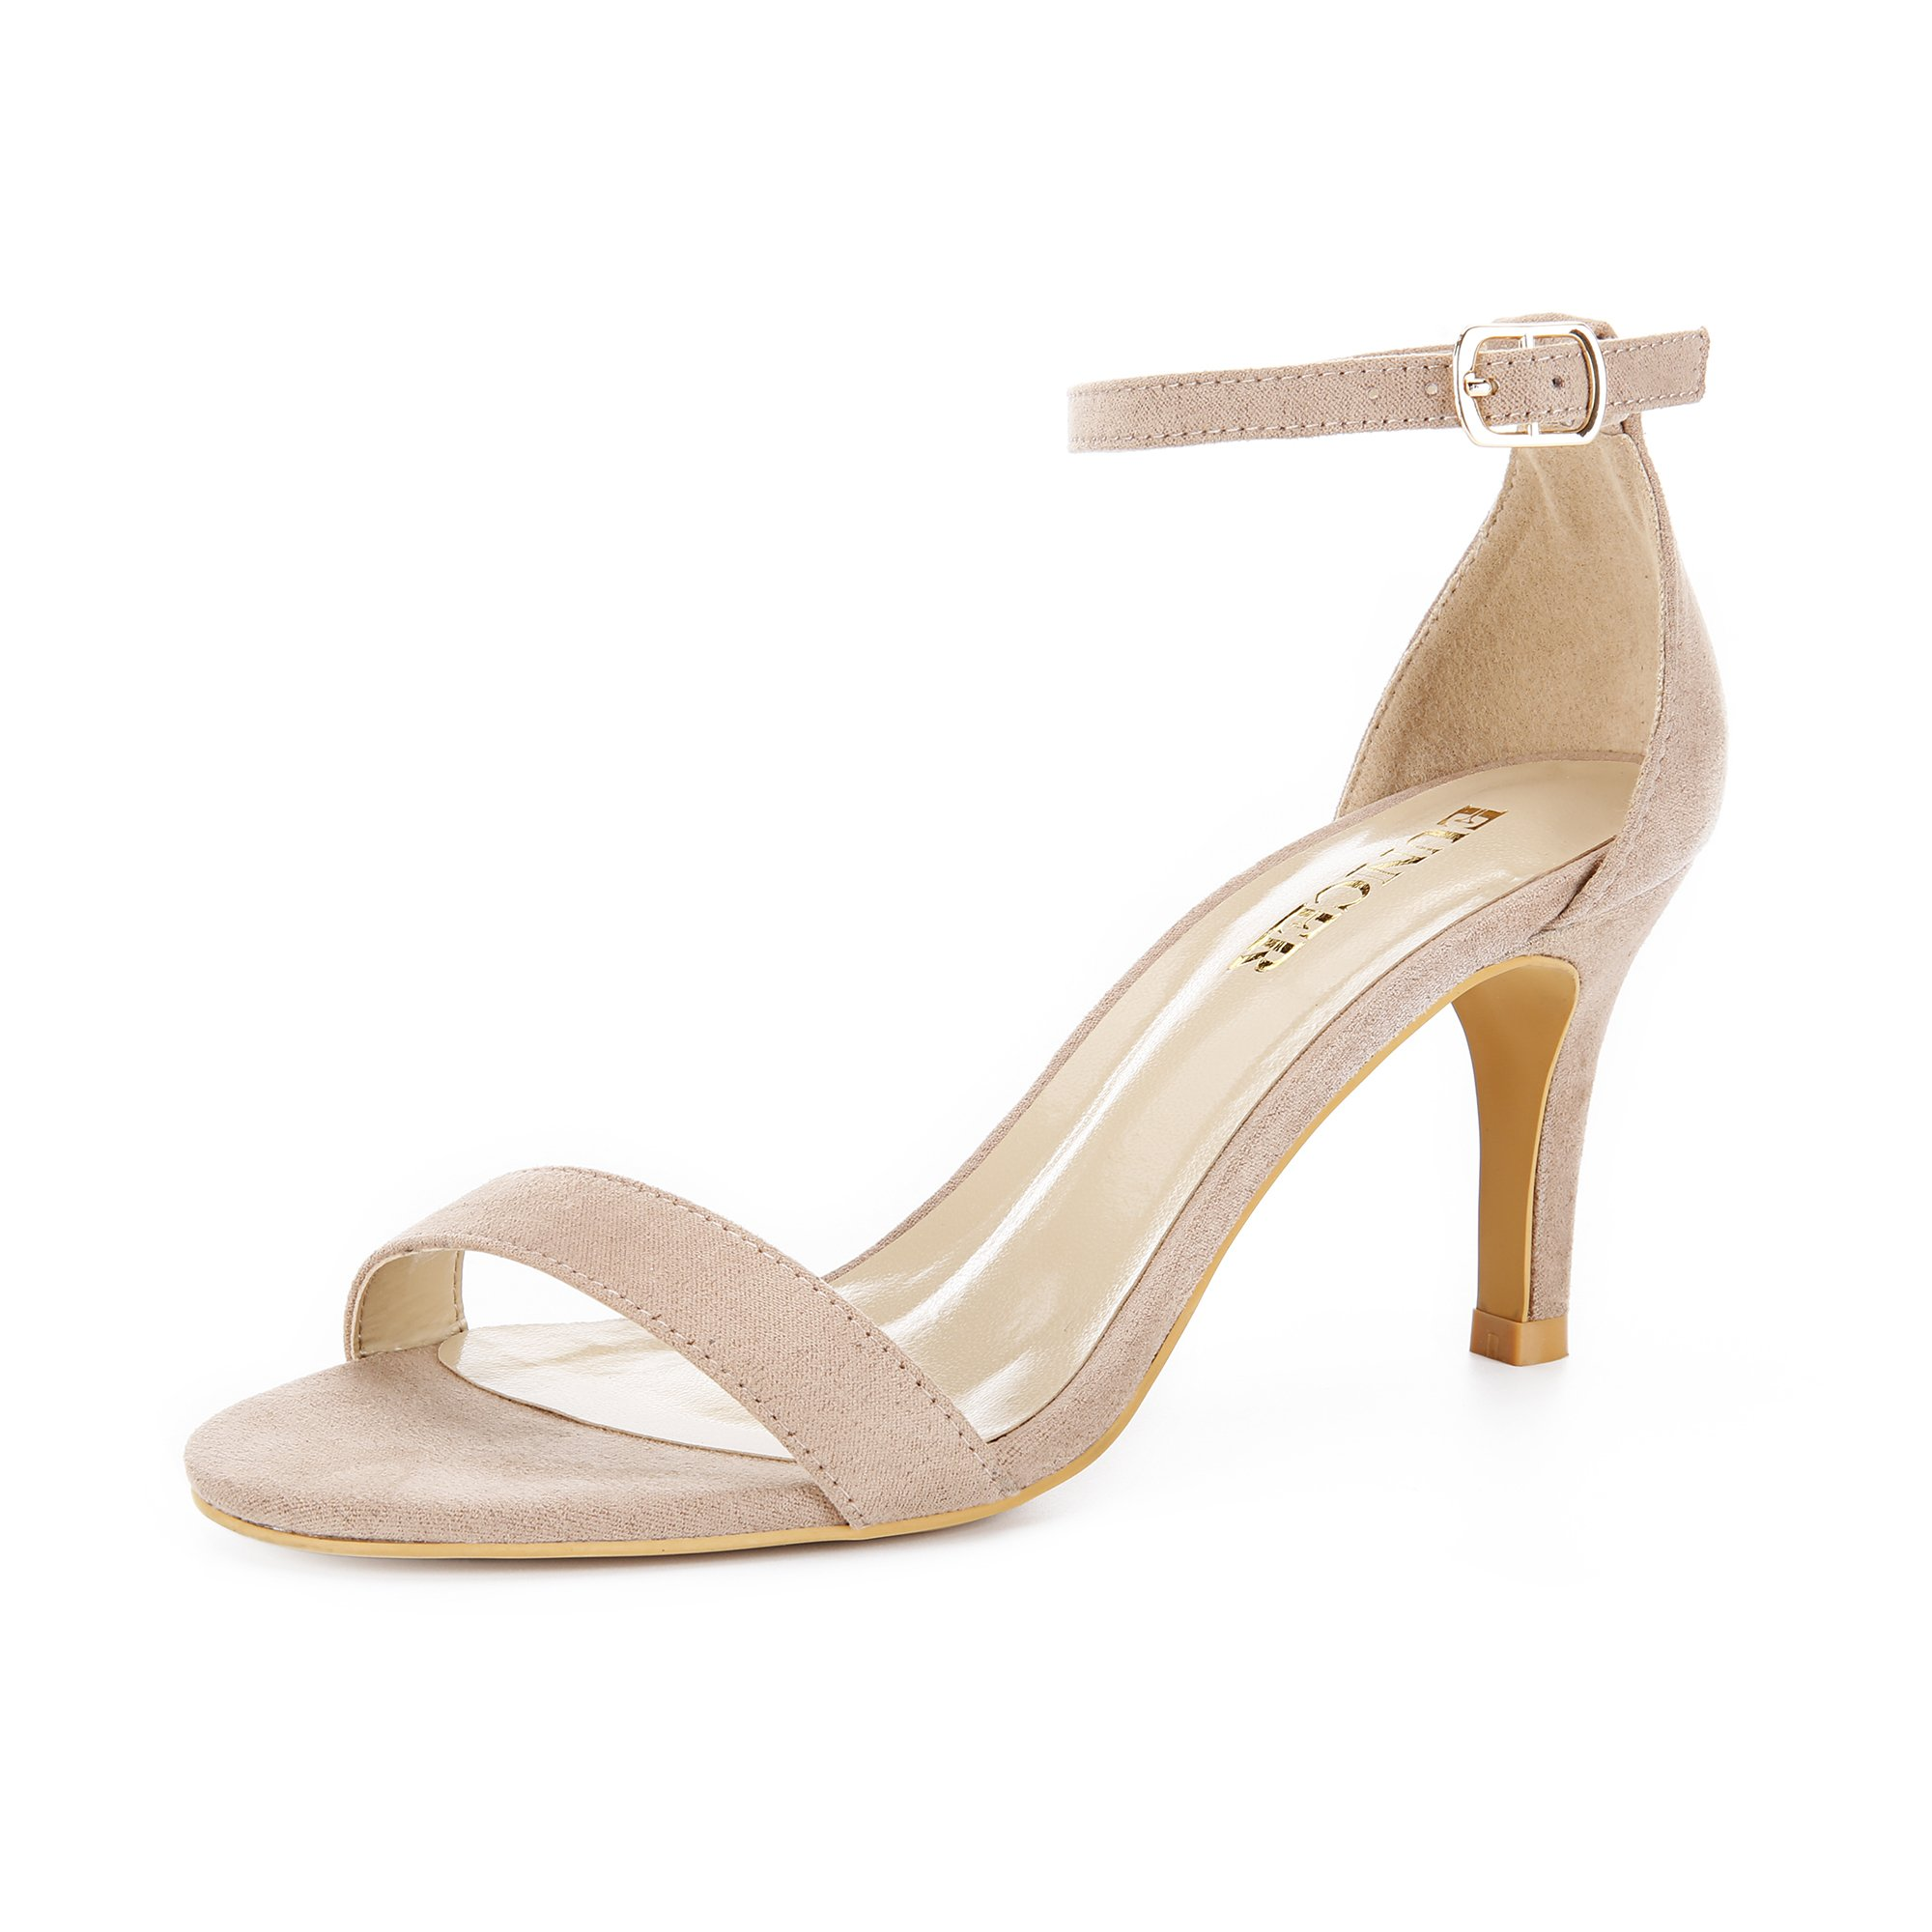 Eunicer Women's Open Toe Ankle Strap High Heel Stiletto Sandals Party Dress Shoes,Nude Suede,9.5 B(M) US